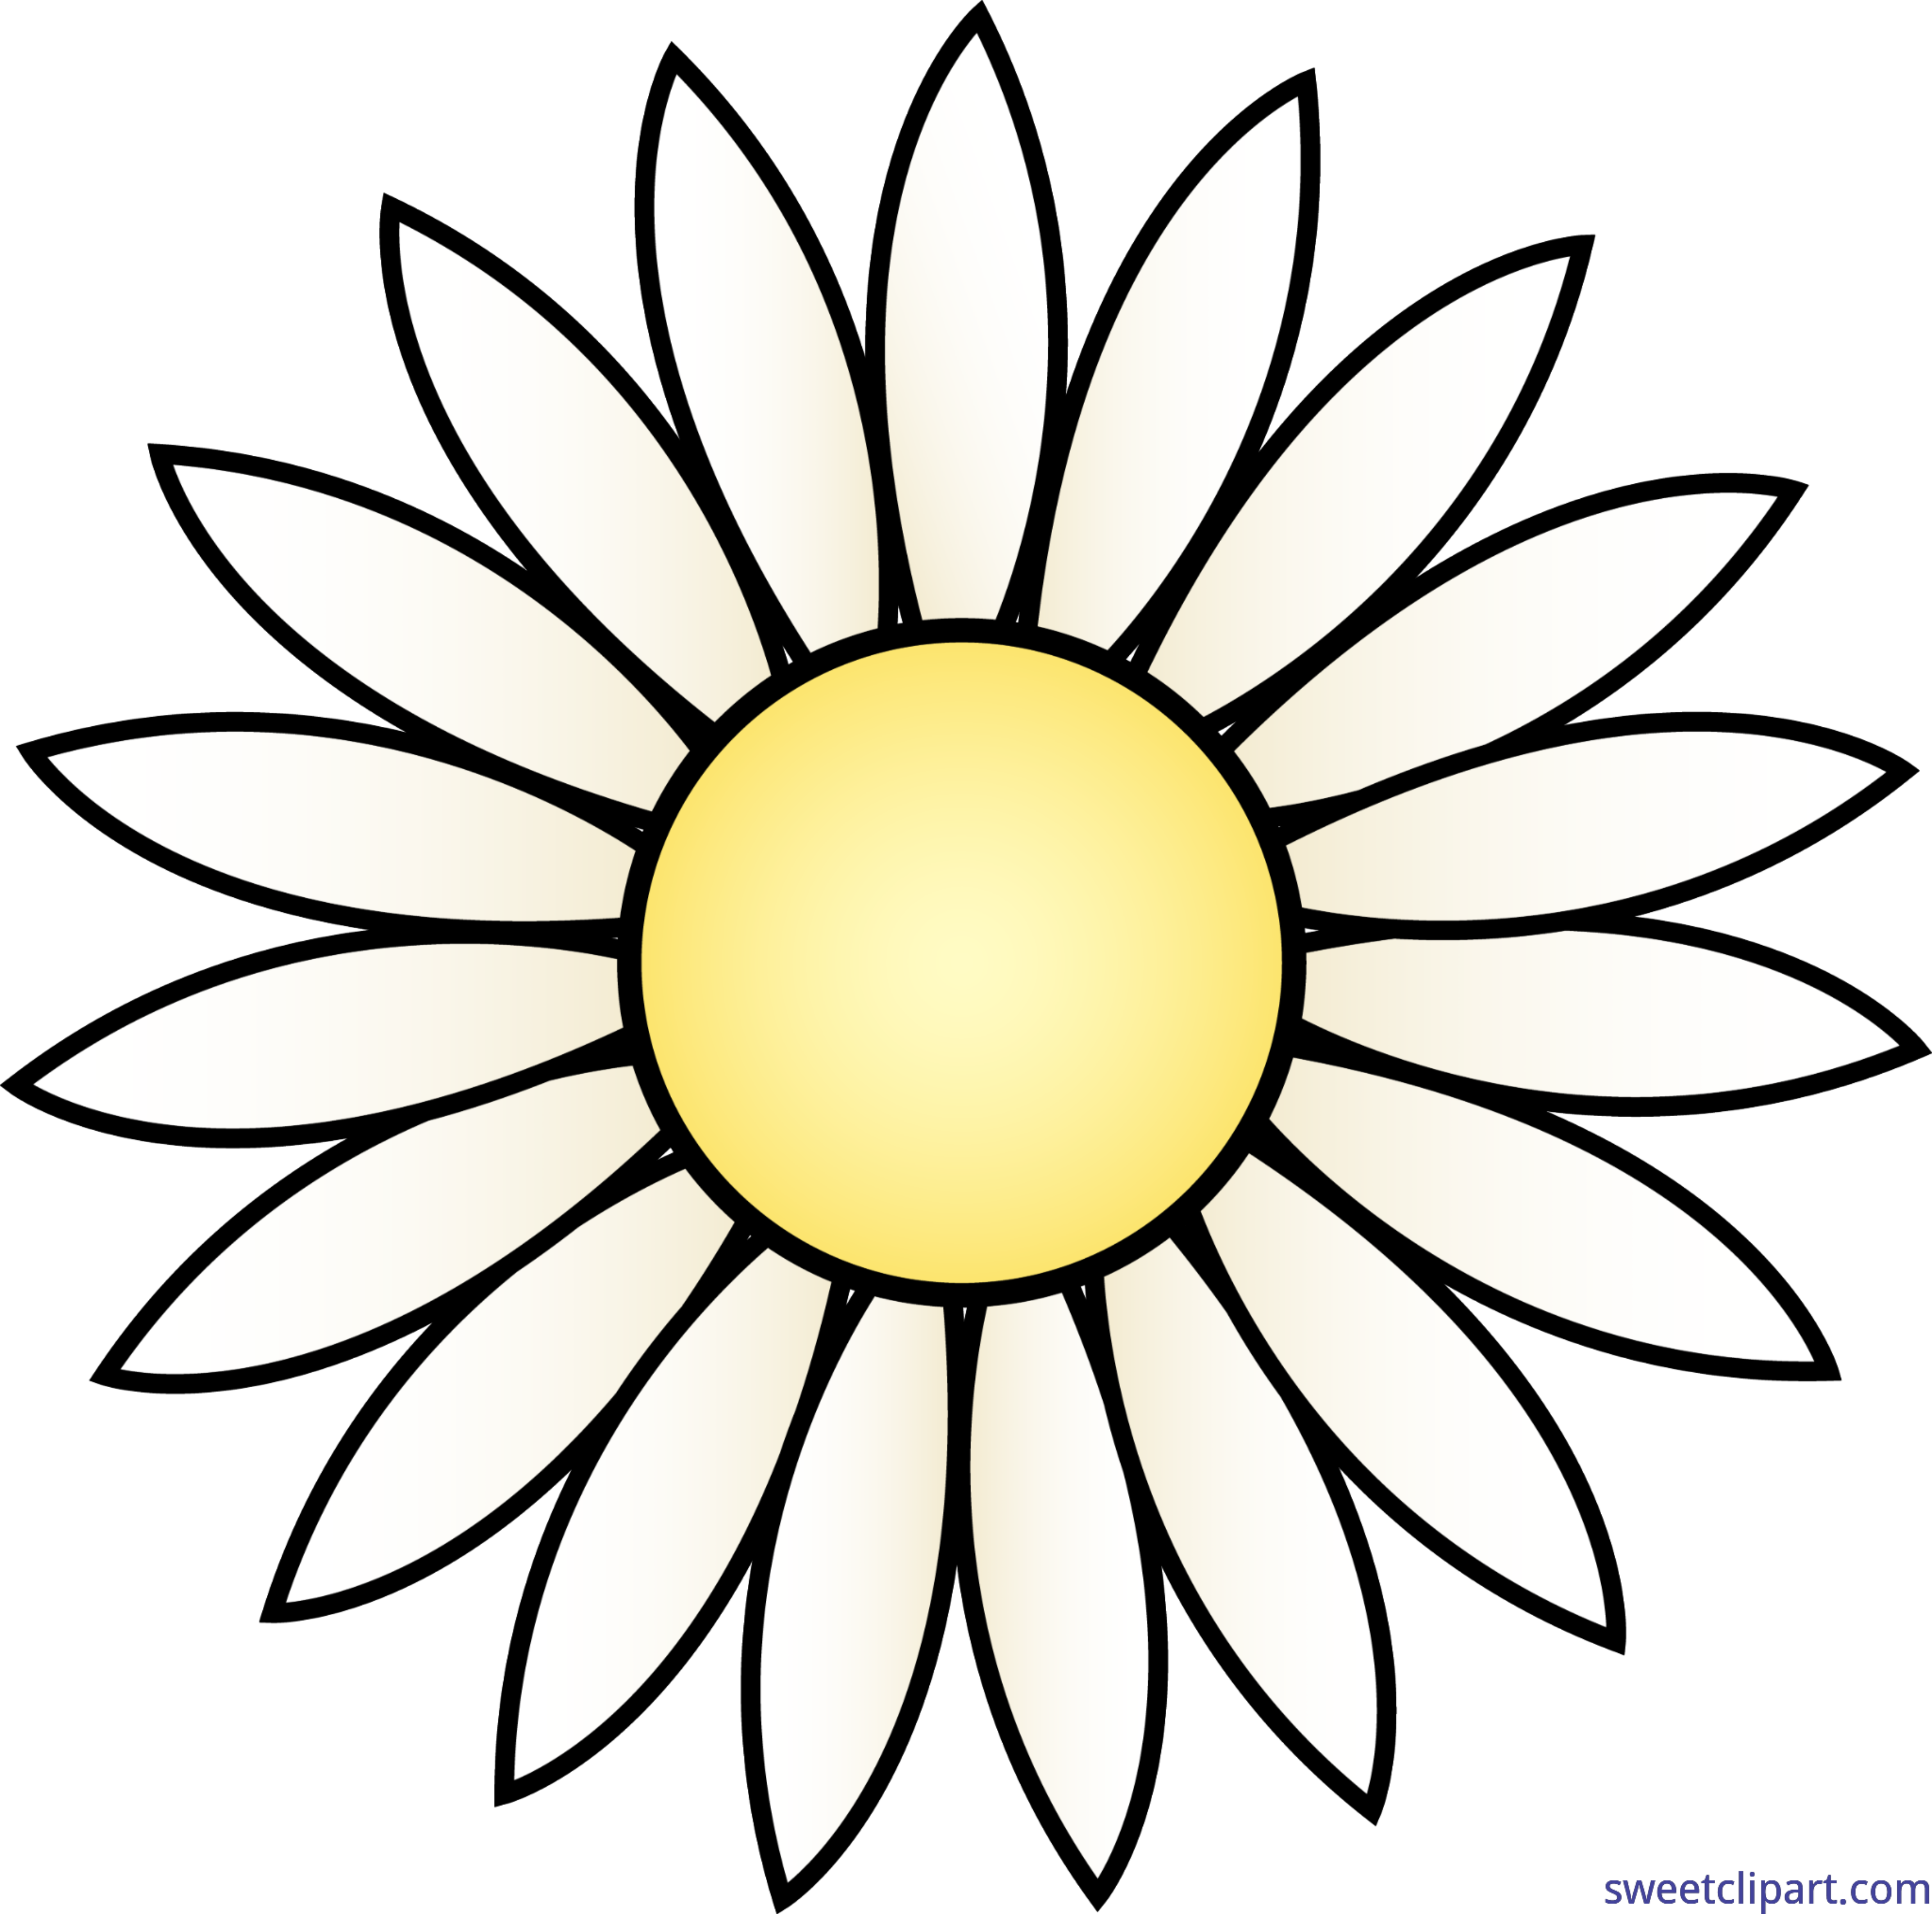 Daisies clipart scene. Nature flowers daisy clip